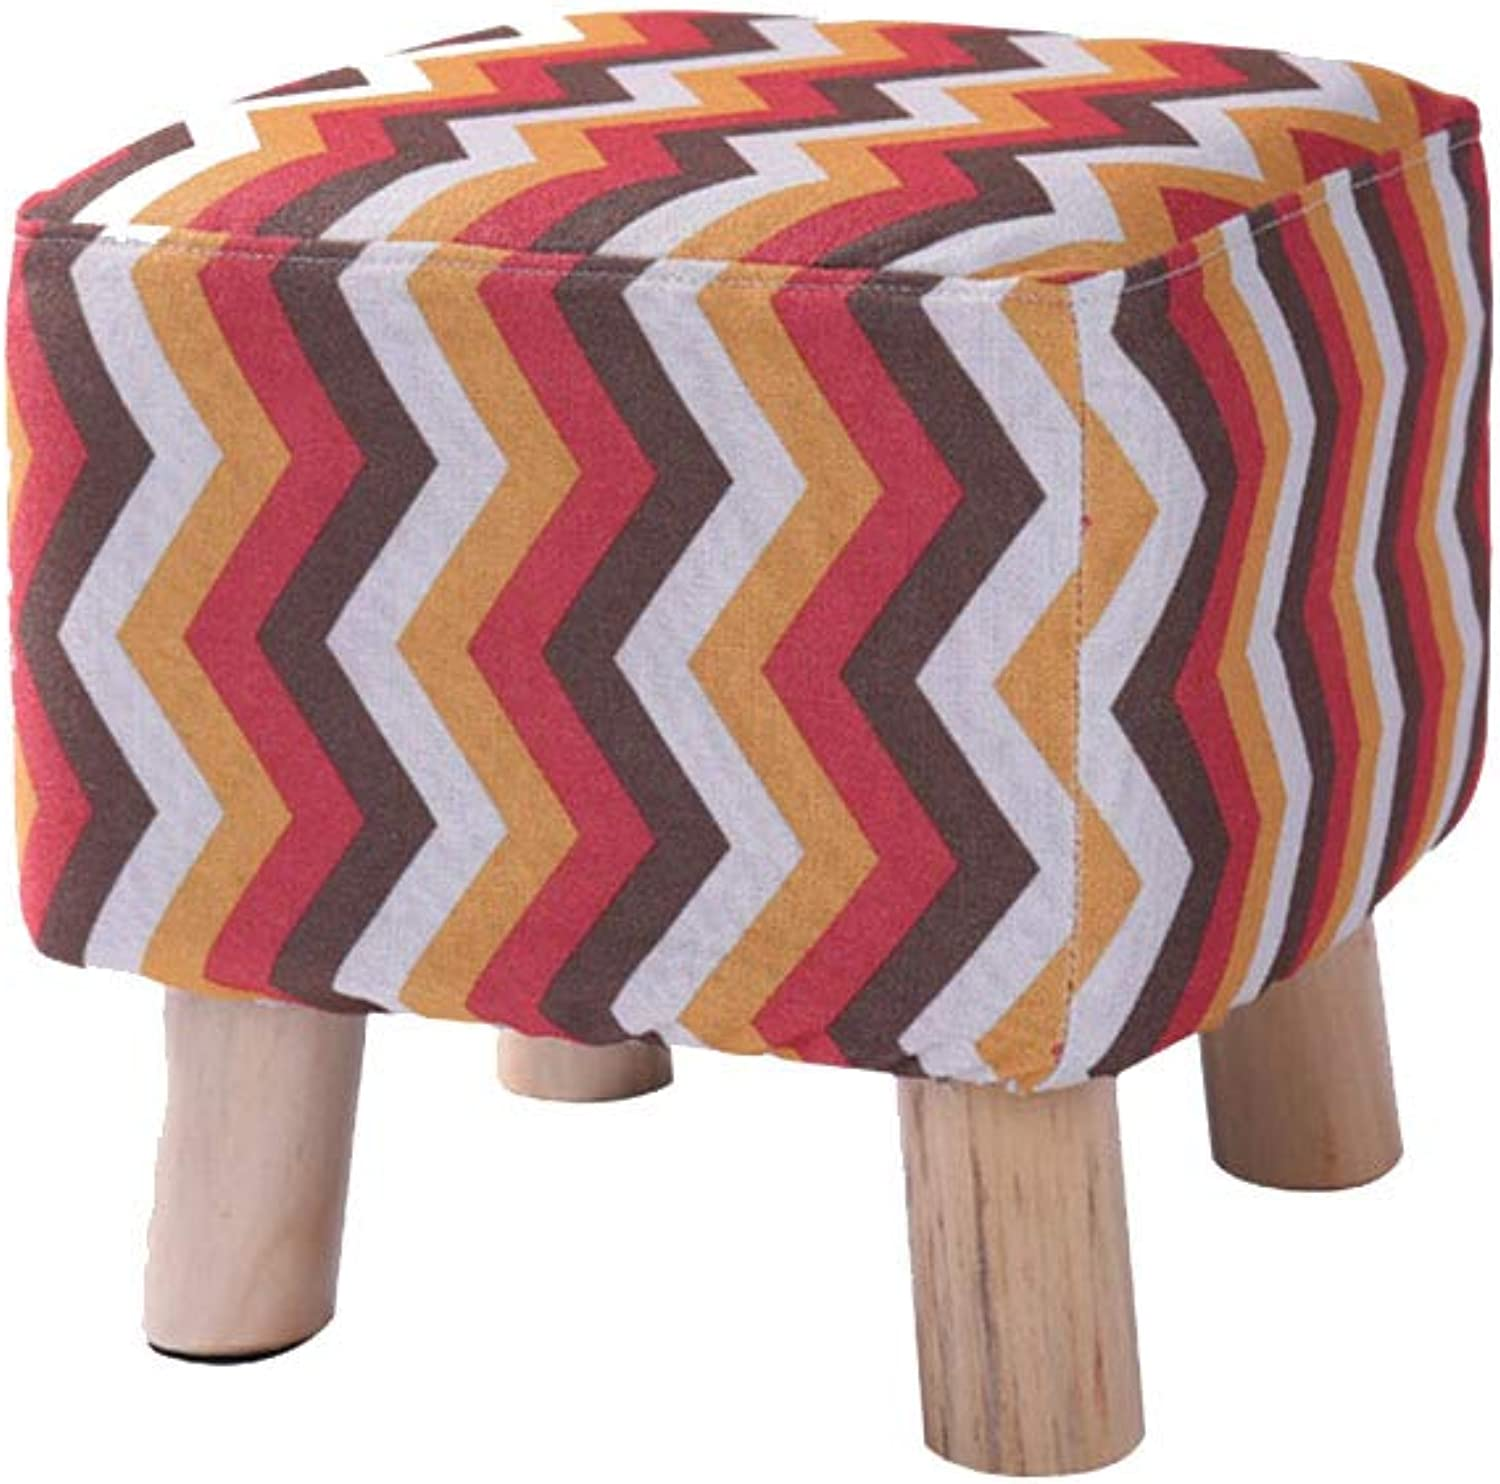 Stool Footstool shoes Bench Sofa Stool Change shoes Bench Wooden Stool Cloth Change shoes Sofa Home Fashion Solid Wood Multi-Function Stool ZHANGQIANG (color   Red Arrow Cloth, Size   Small)